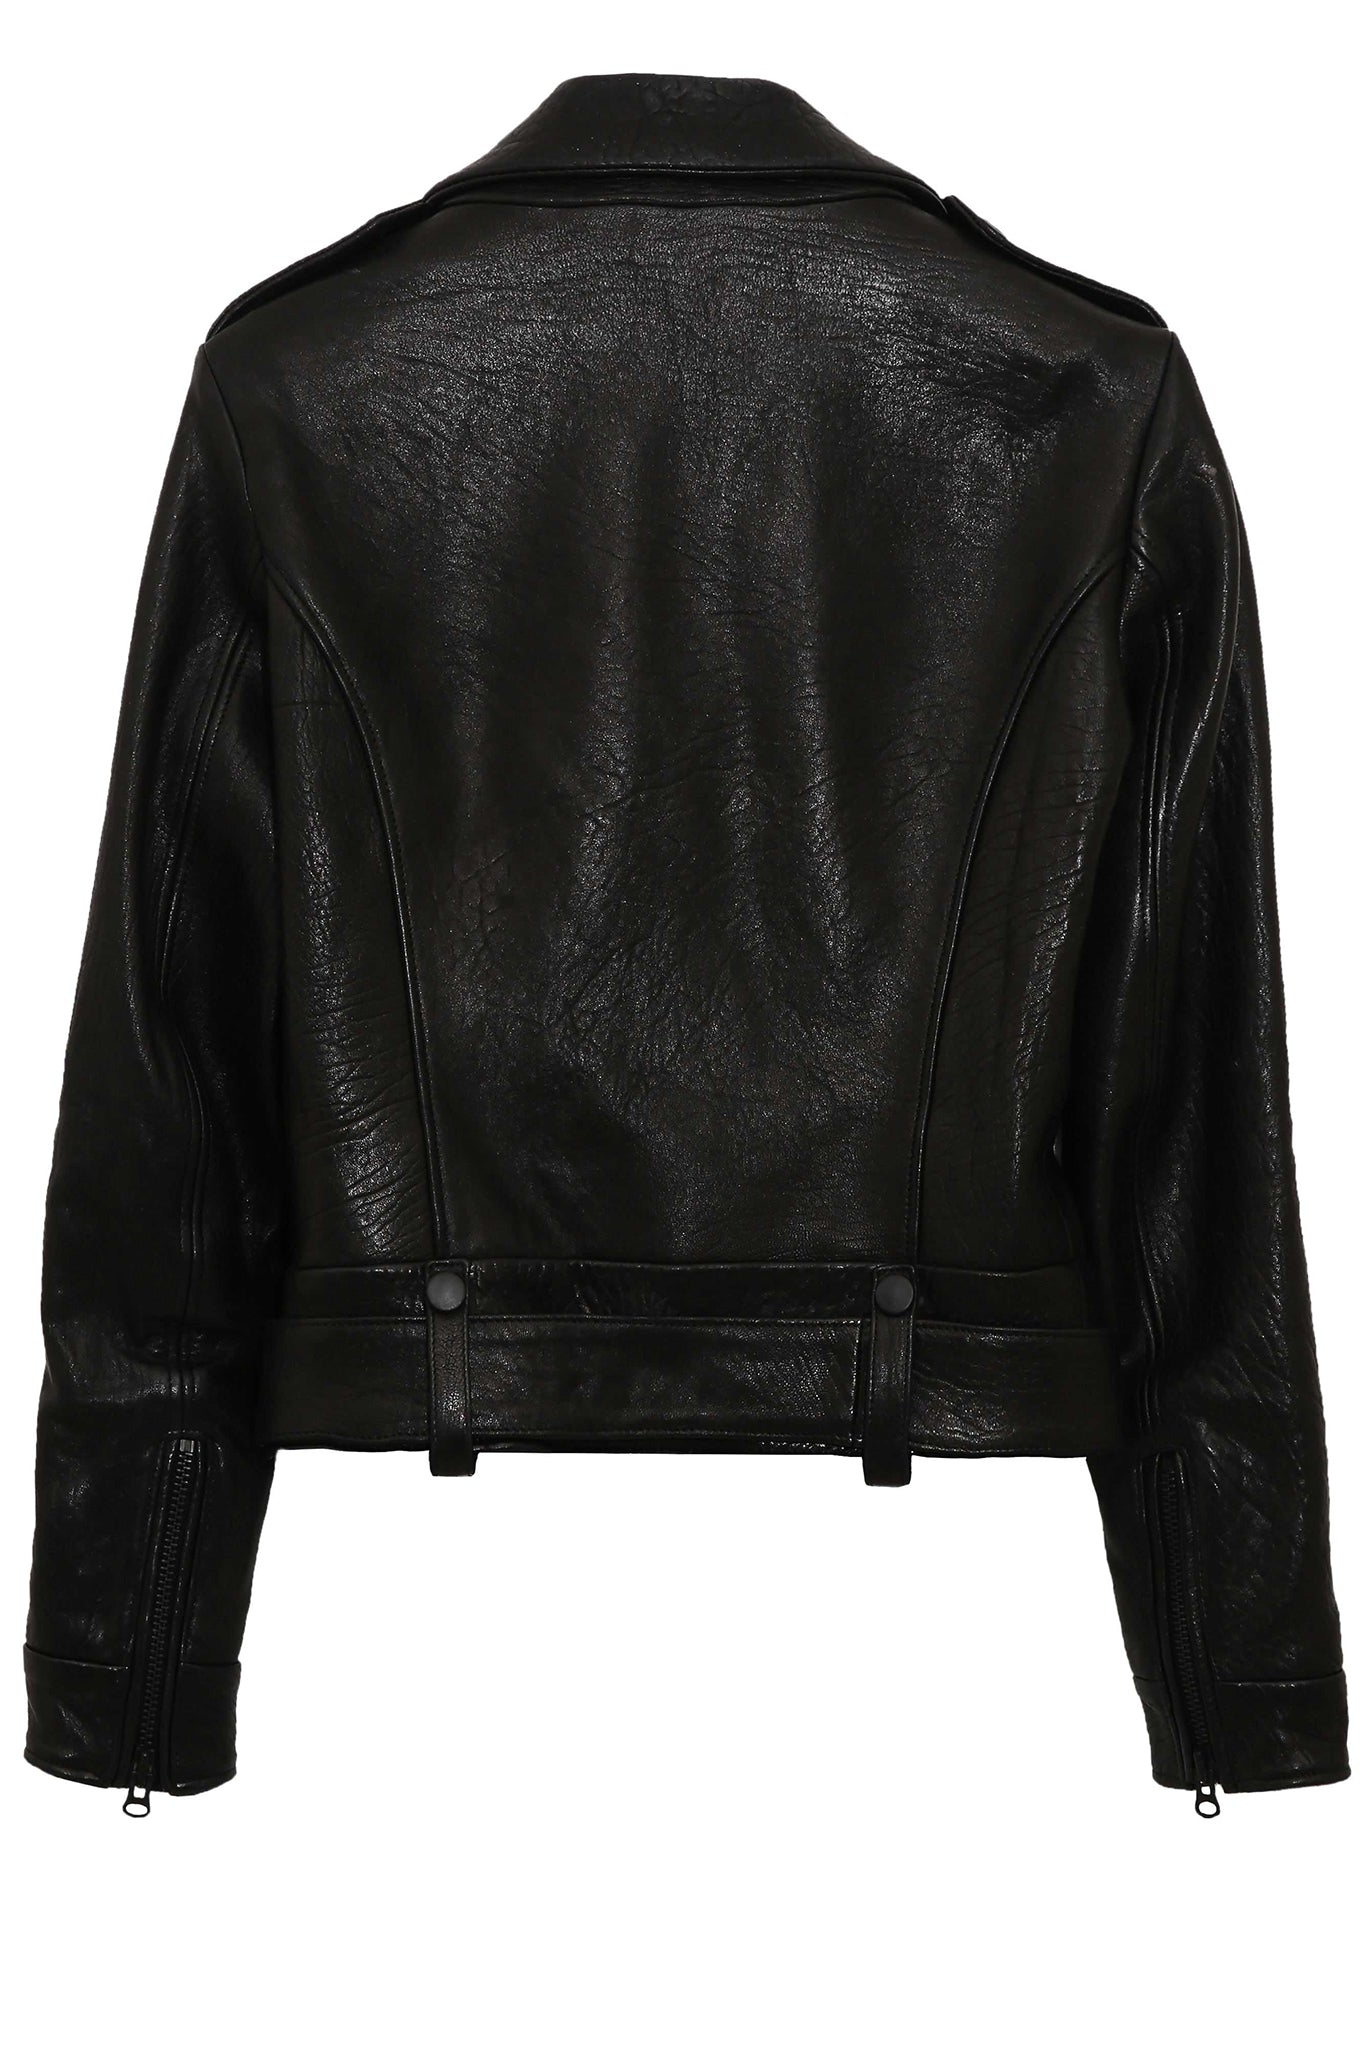 Whyte Studio Black Leather Biker Jacket